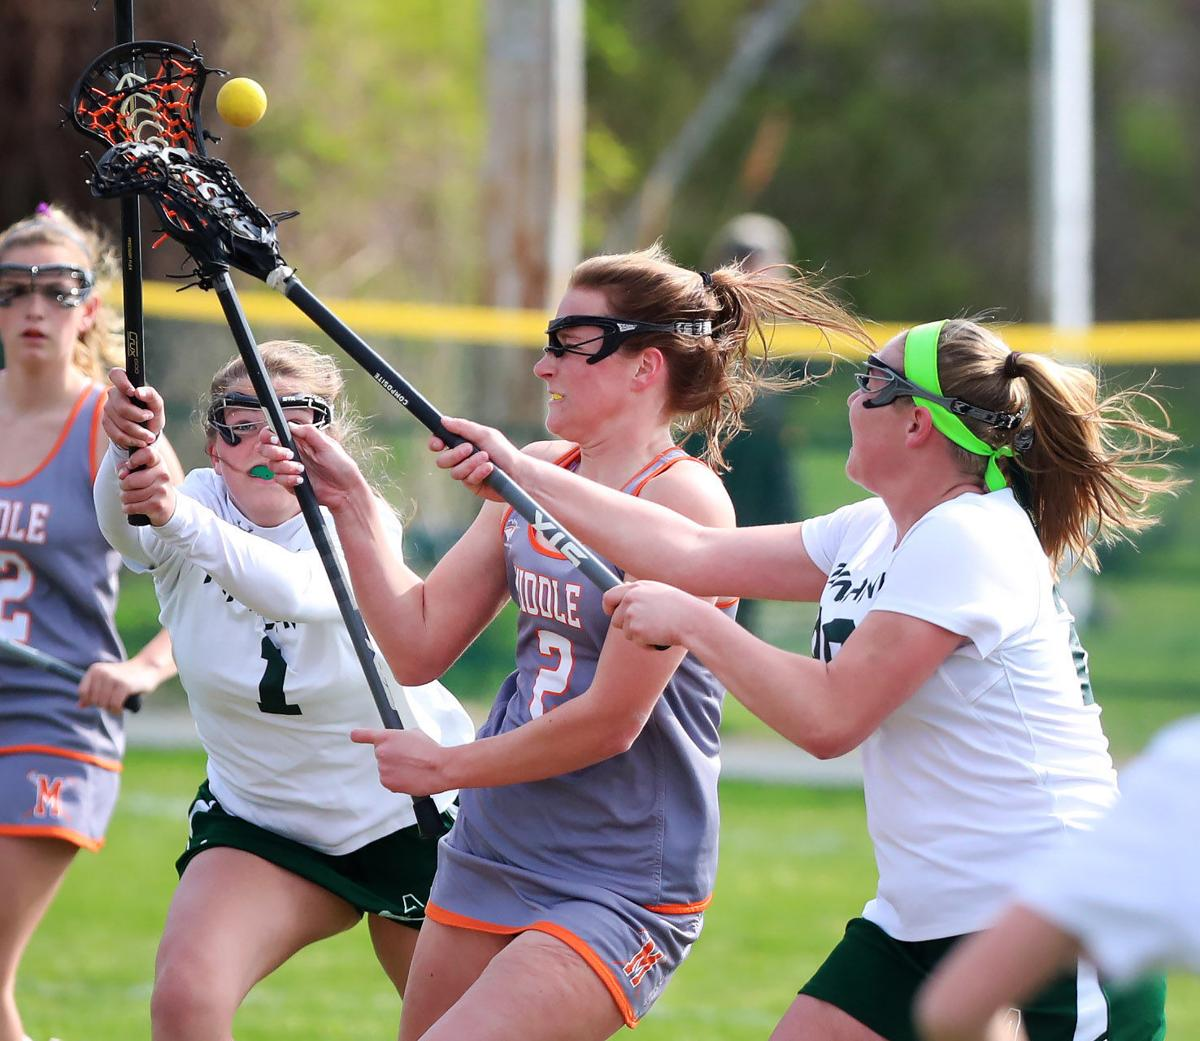 Mainland vs. Middle girls lacrosse game